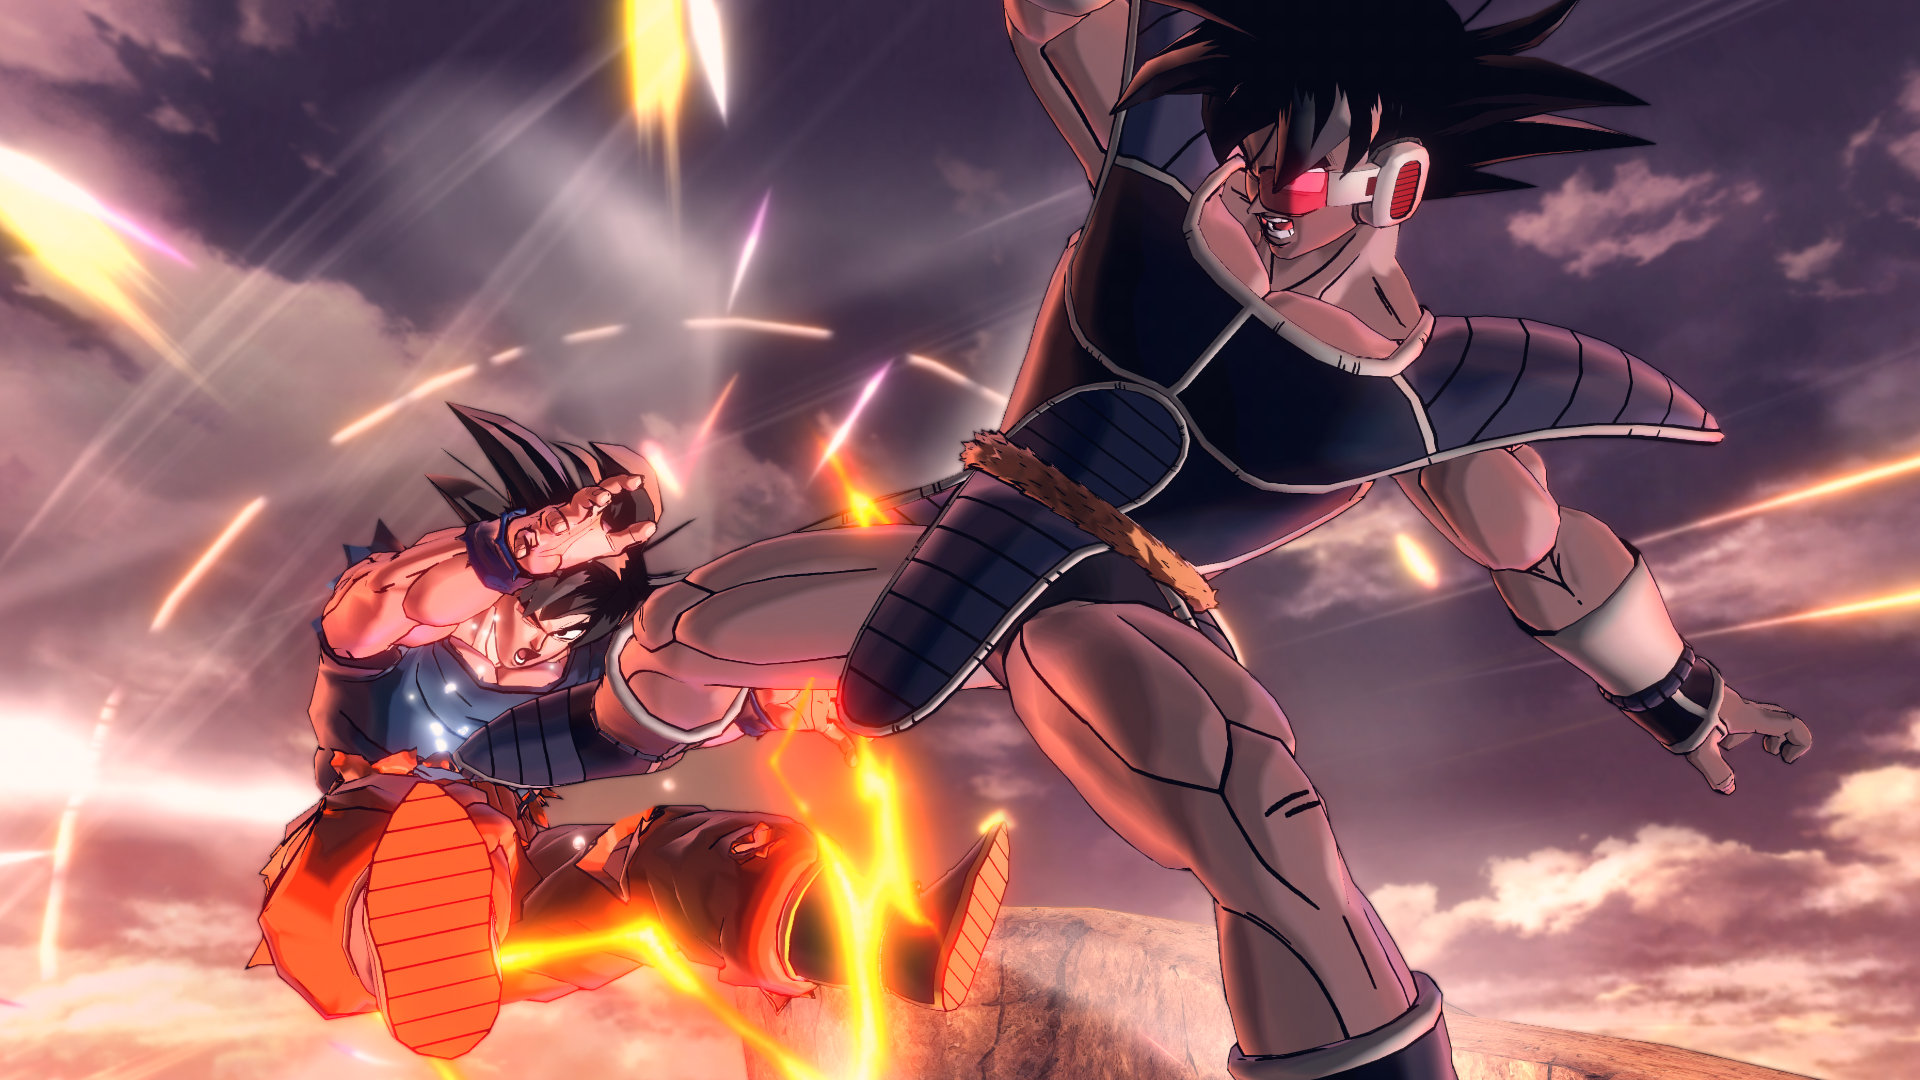 dragonball-xenoverse-2-screen-03-ps4-us-